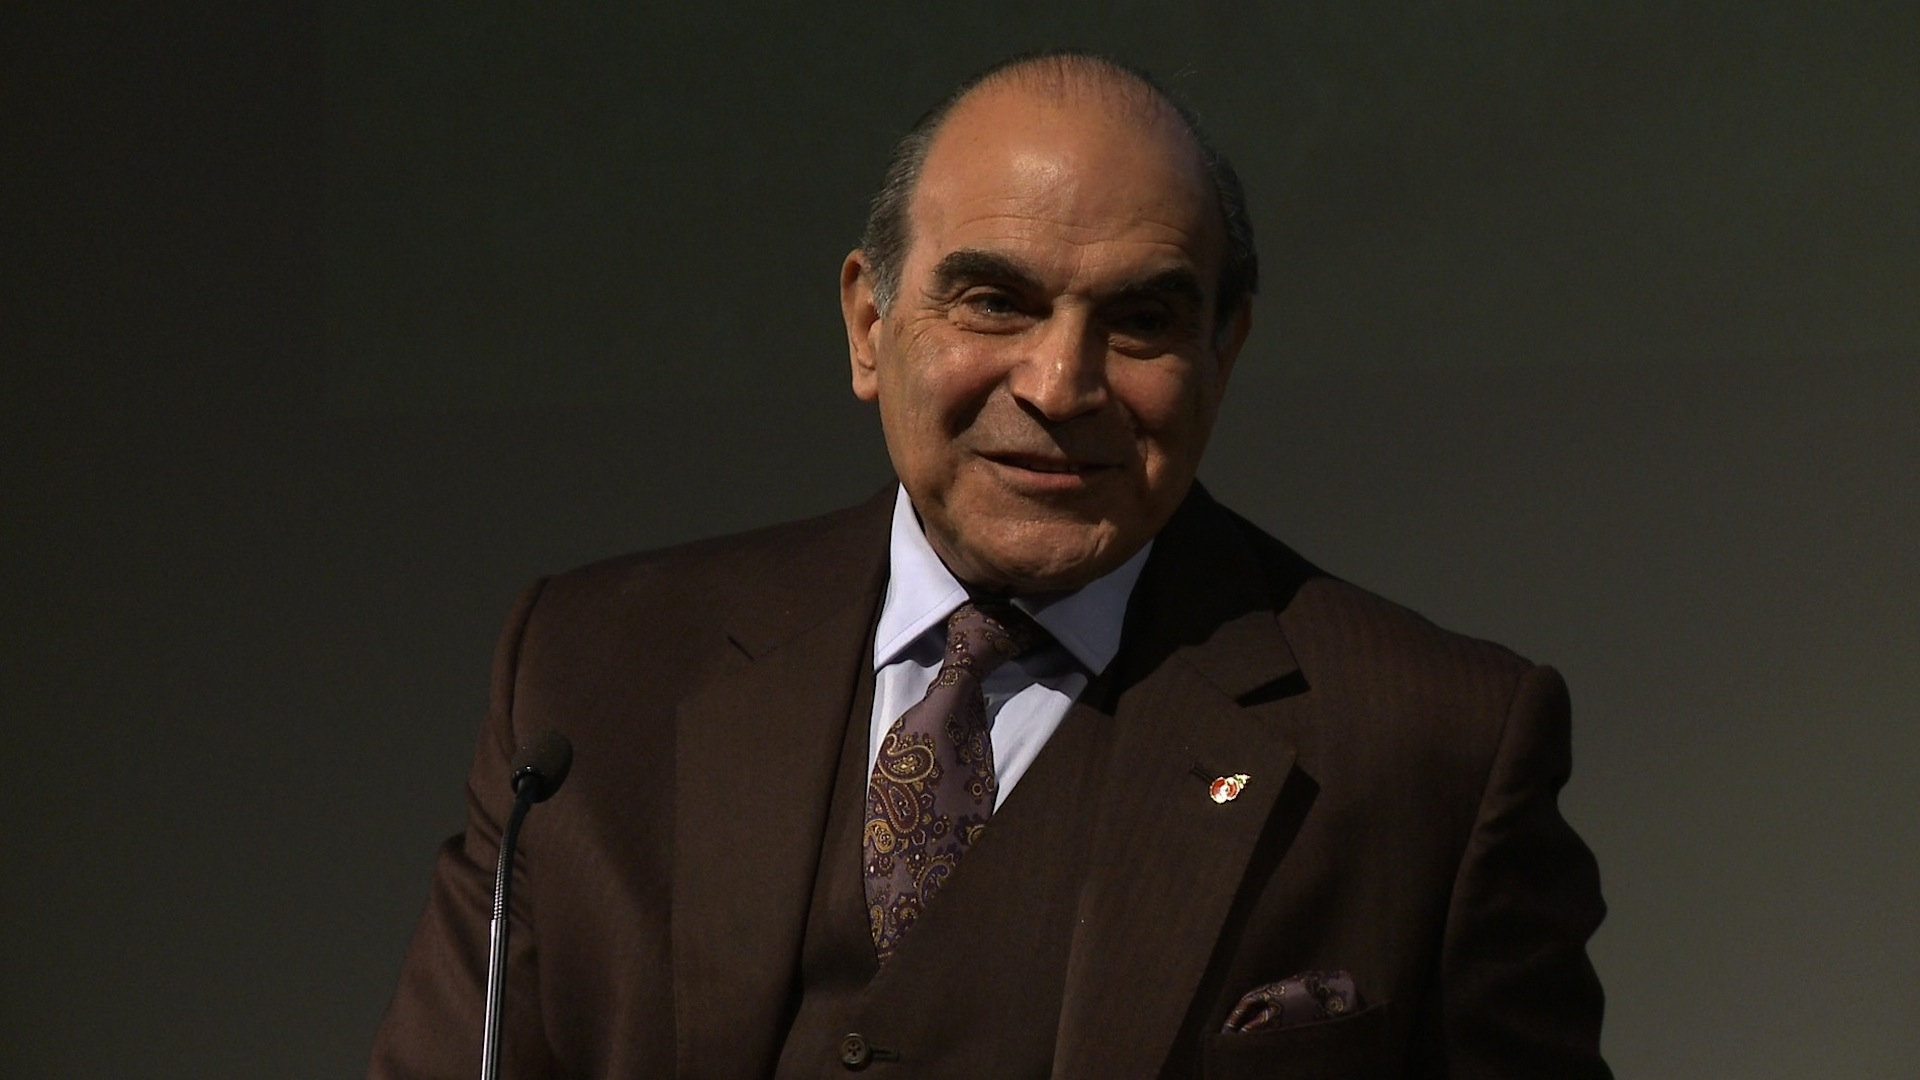 photo David Suchet (born 1946)